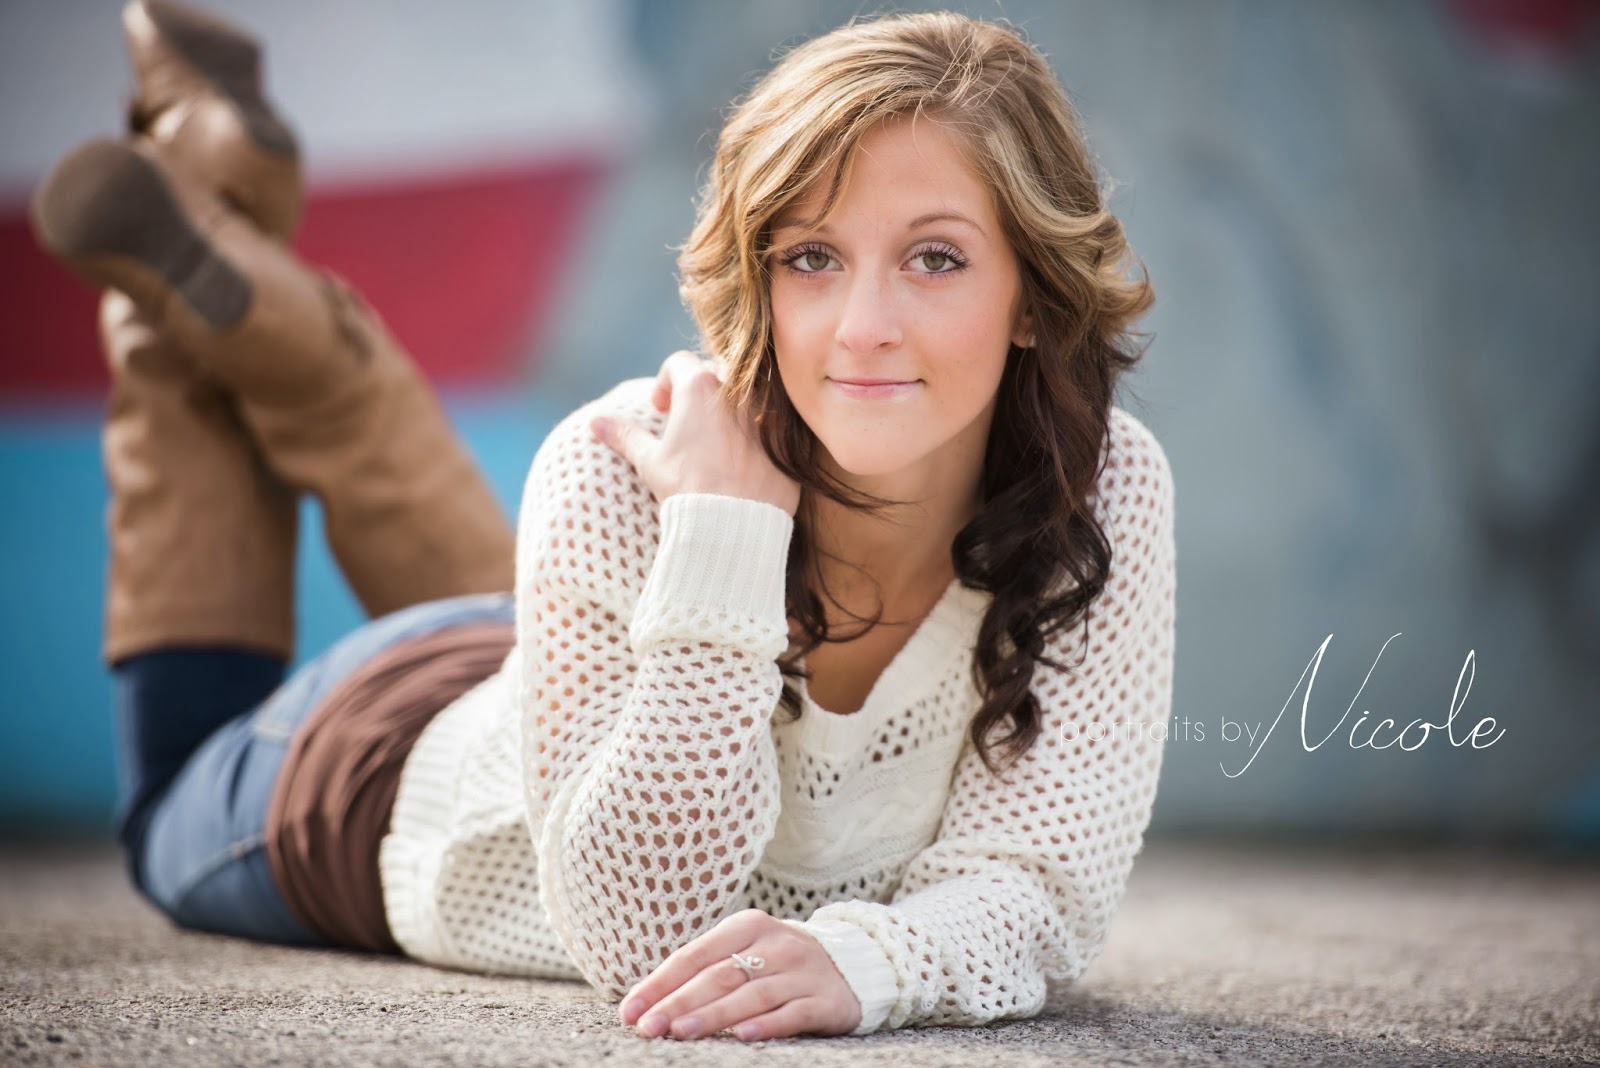 churubusco senior personals Looking for churubusco members check out the the profile previews below and you may just see your perfect partner start a conversation and arrange to meetup this week.